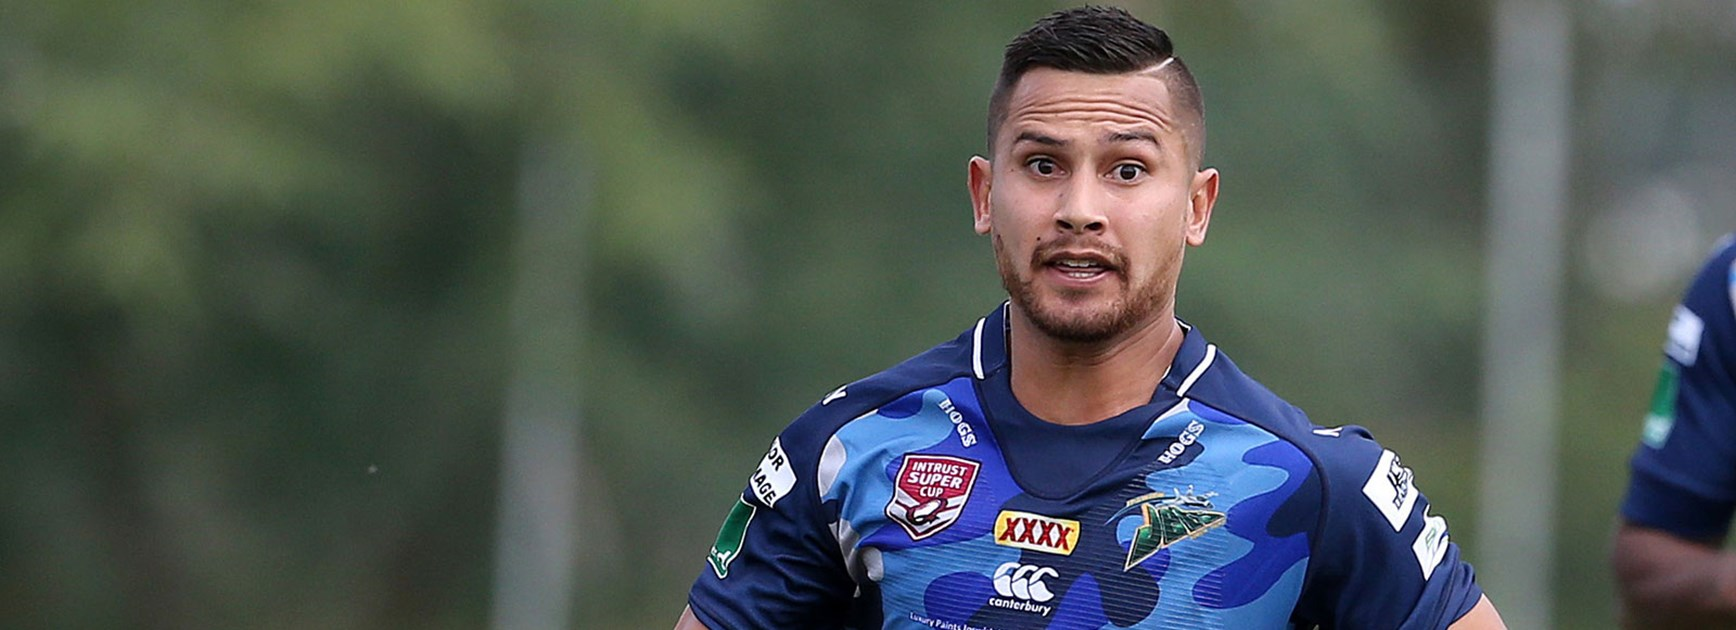 Marmin Barba scored 22 tries in 23 games for the Ipswich Jets last season.